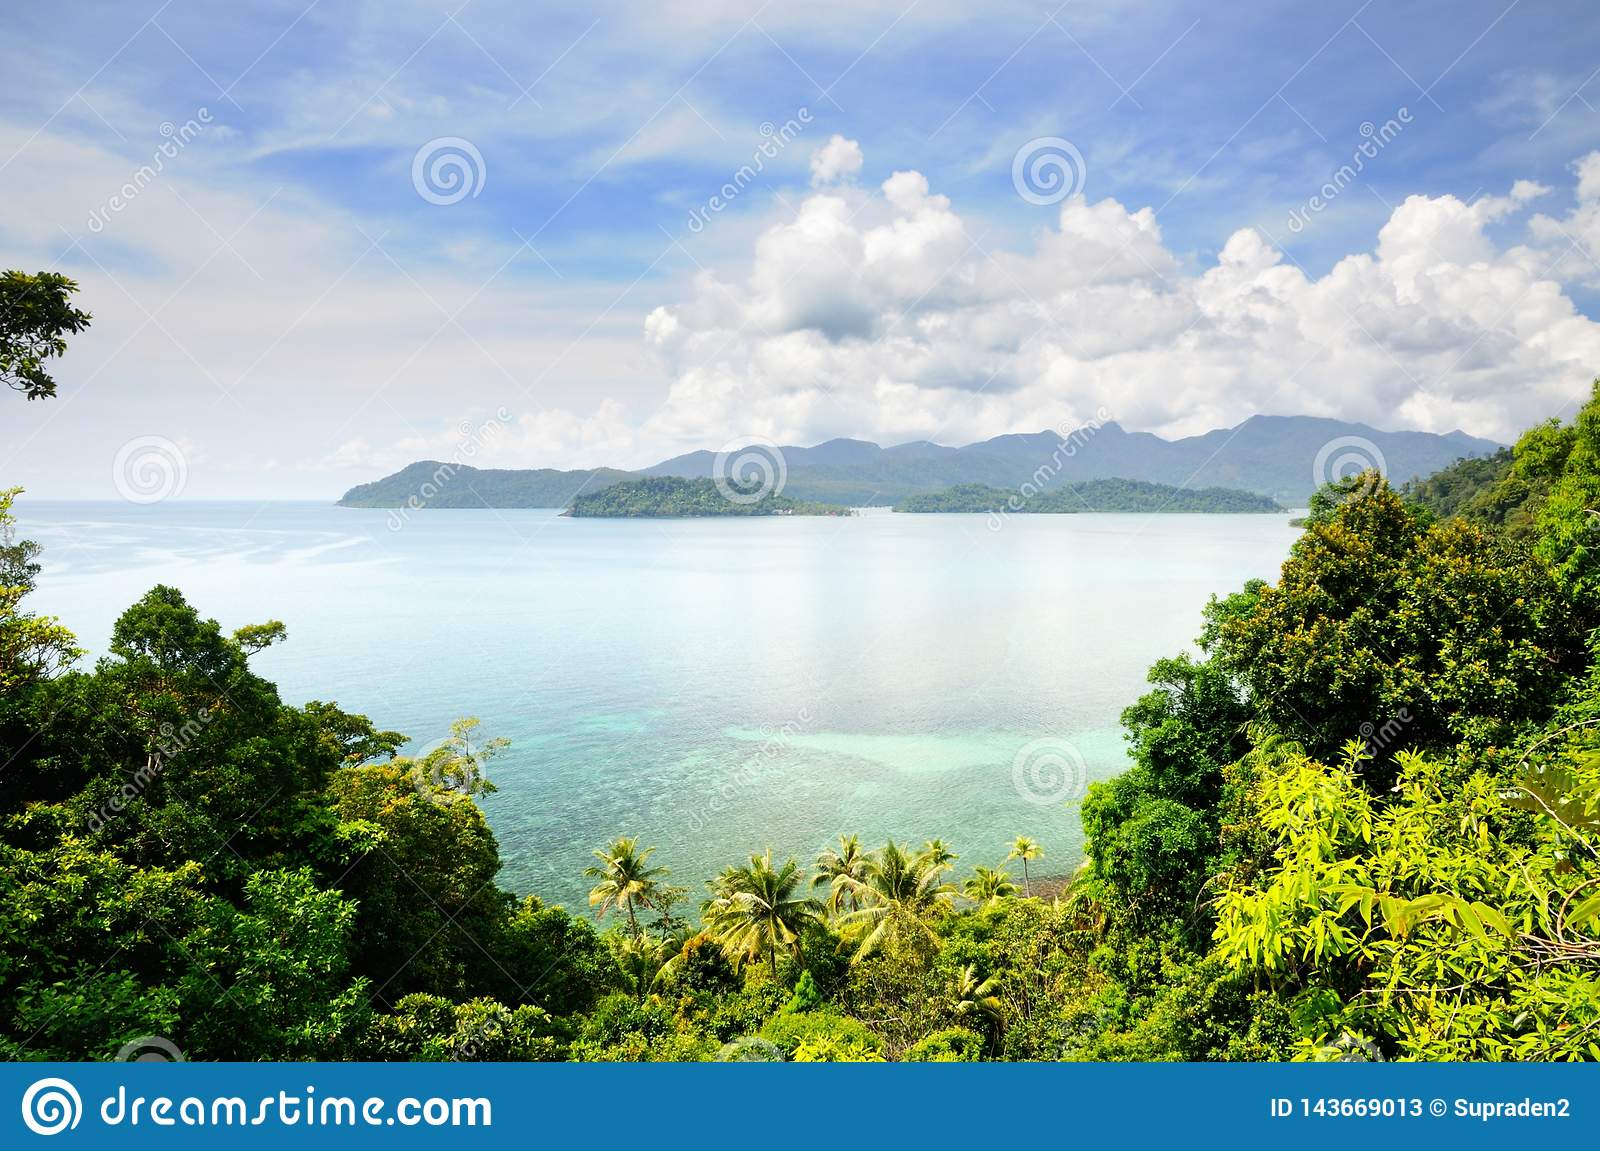 Aerial view on the tropical island, turquoise sea, mountains, blue sky and scenic clouds at the Koh Chang island, Thailand.